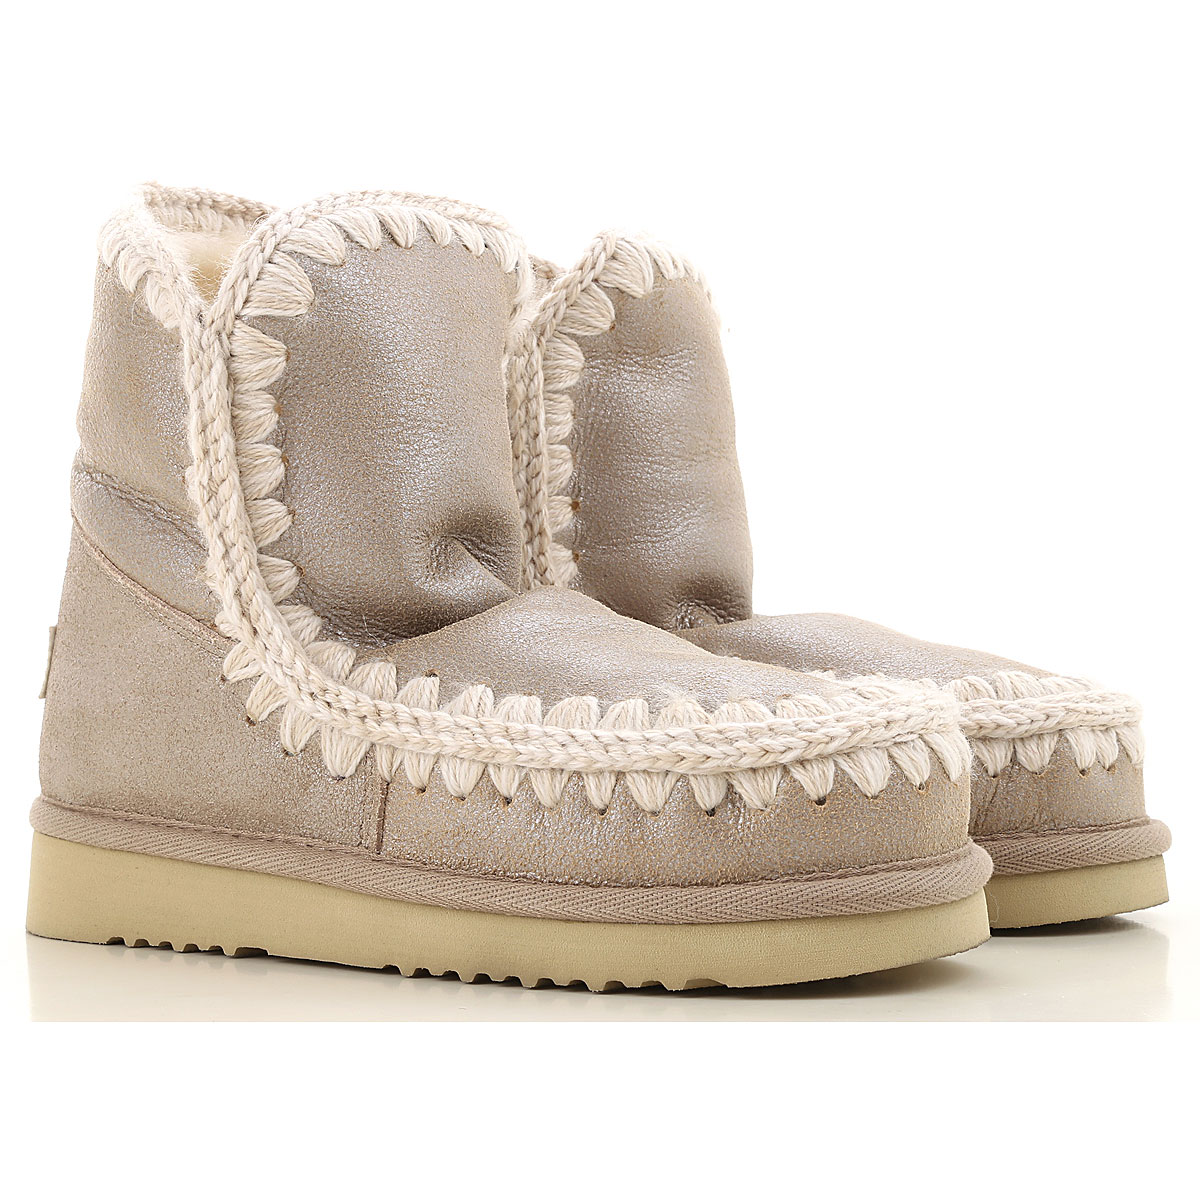 Mou Boots for Women, Booties On Sale, Sand, Leather, 2019, EUR 37 - UK 4 - USA 6.5 EUR 38 - UK 5 - USA 7.5 EUR 39 - UK 6 - USA 8.5 EUR 40 - UK 7 - USA